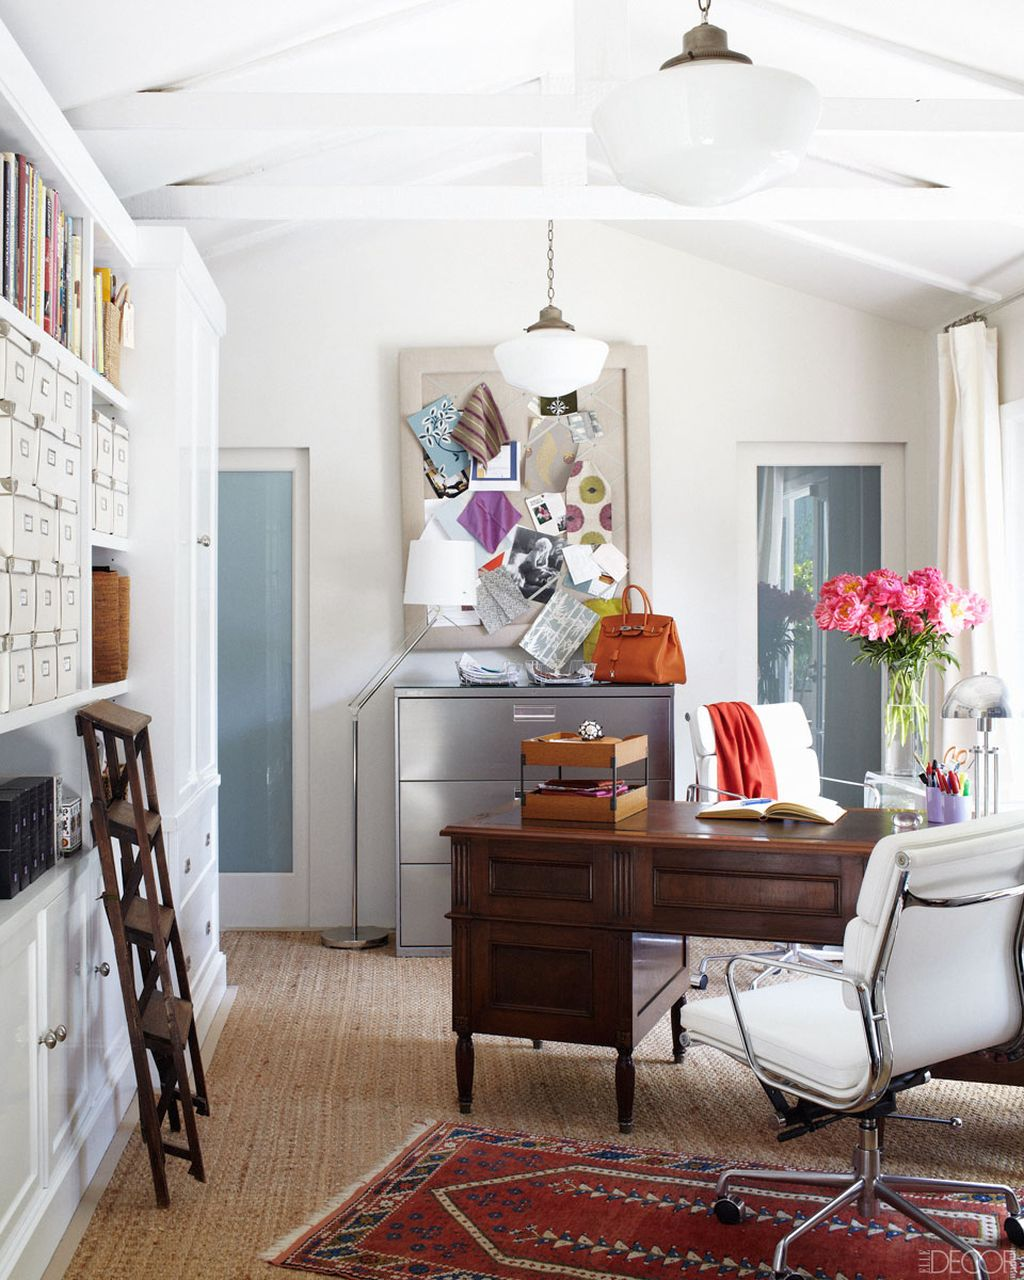 Home Gallery Design Ideas: 20 Inspiring Home Office Design Ideas For Small Spaces